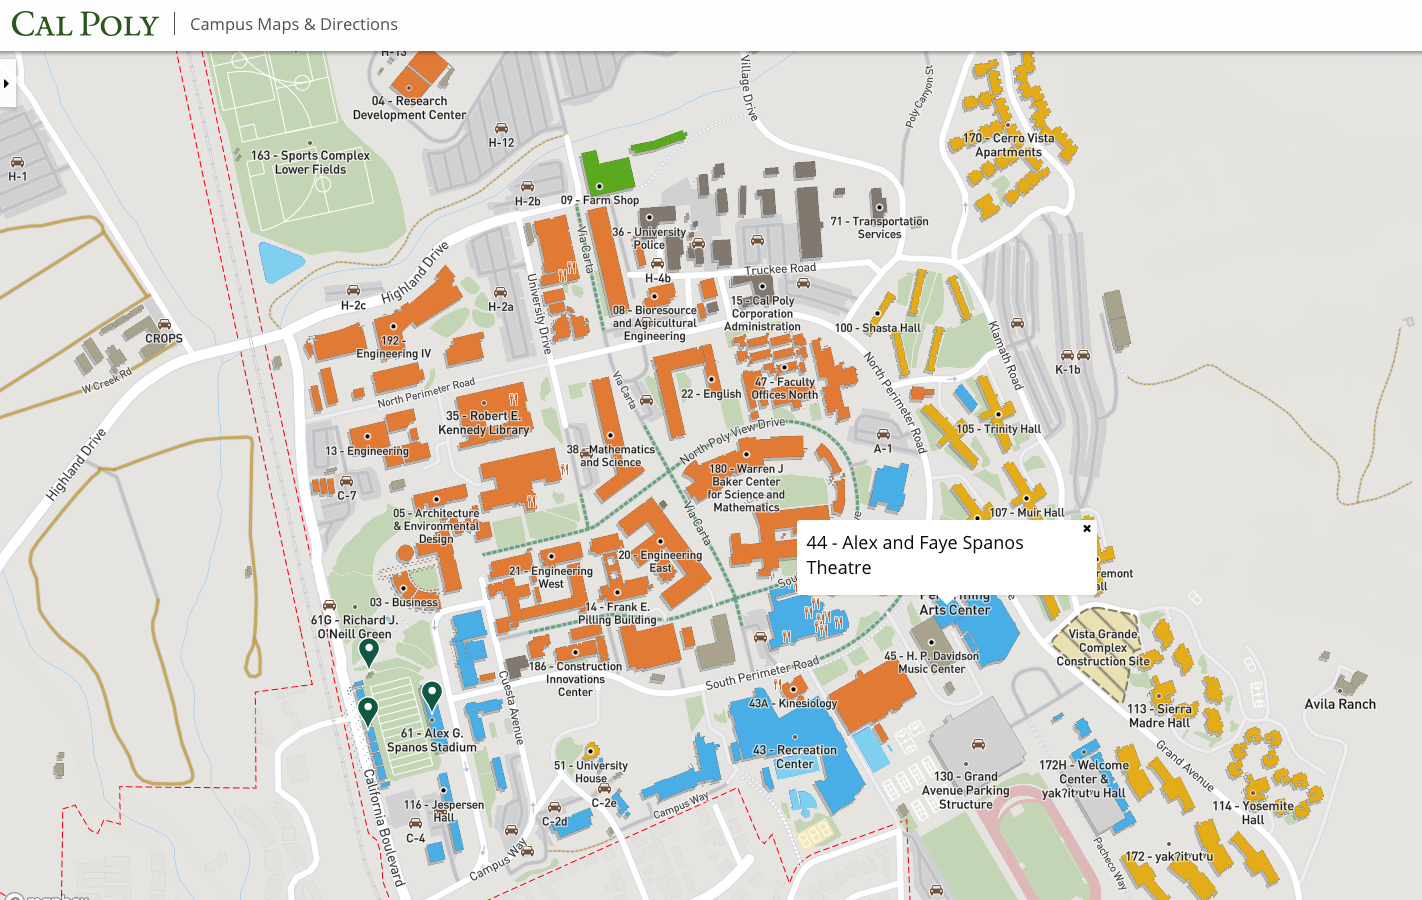 campus map cal poly Location And Loading Spanos Theatre Cal Poly San Luis Obispo campus map cal poly